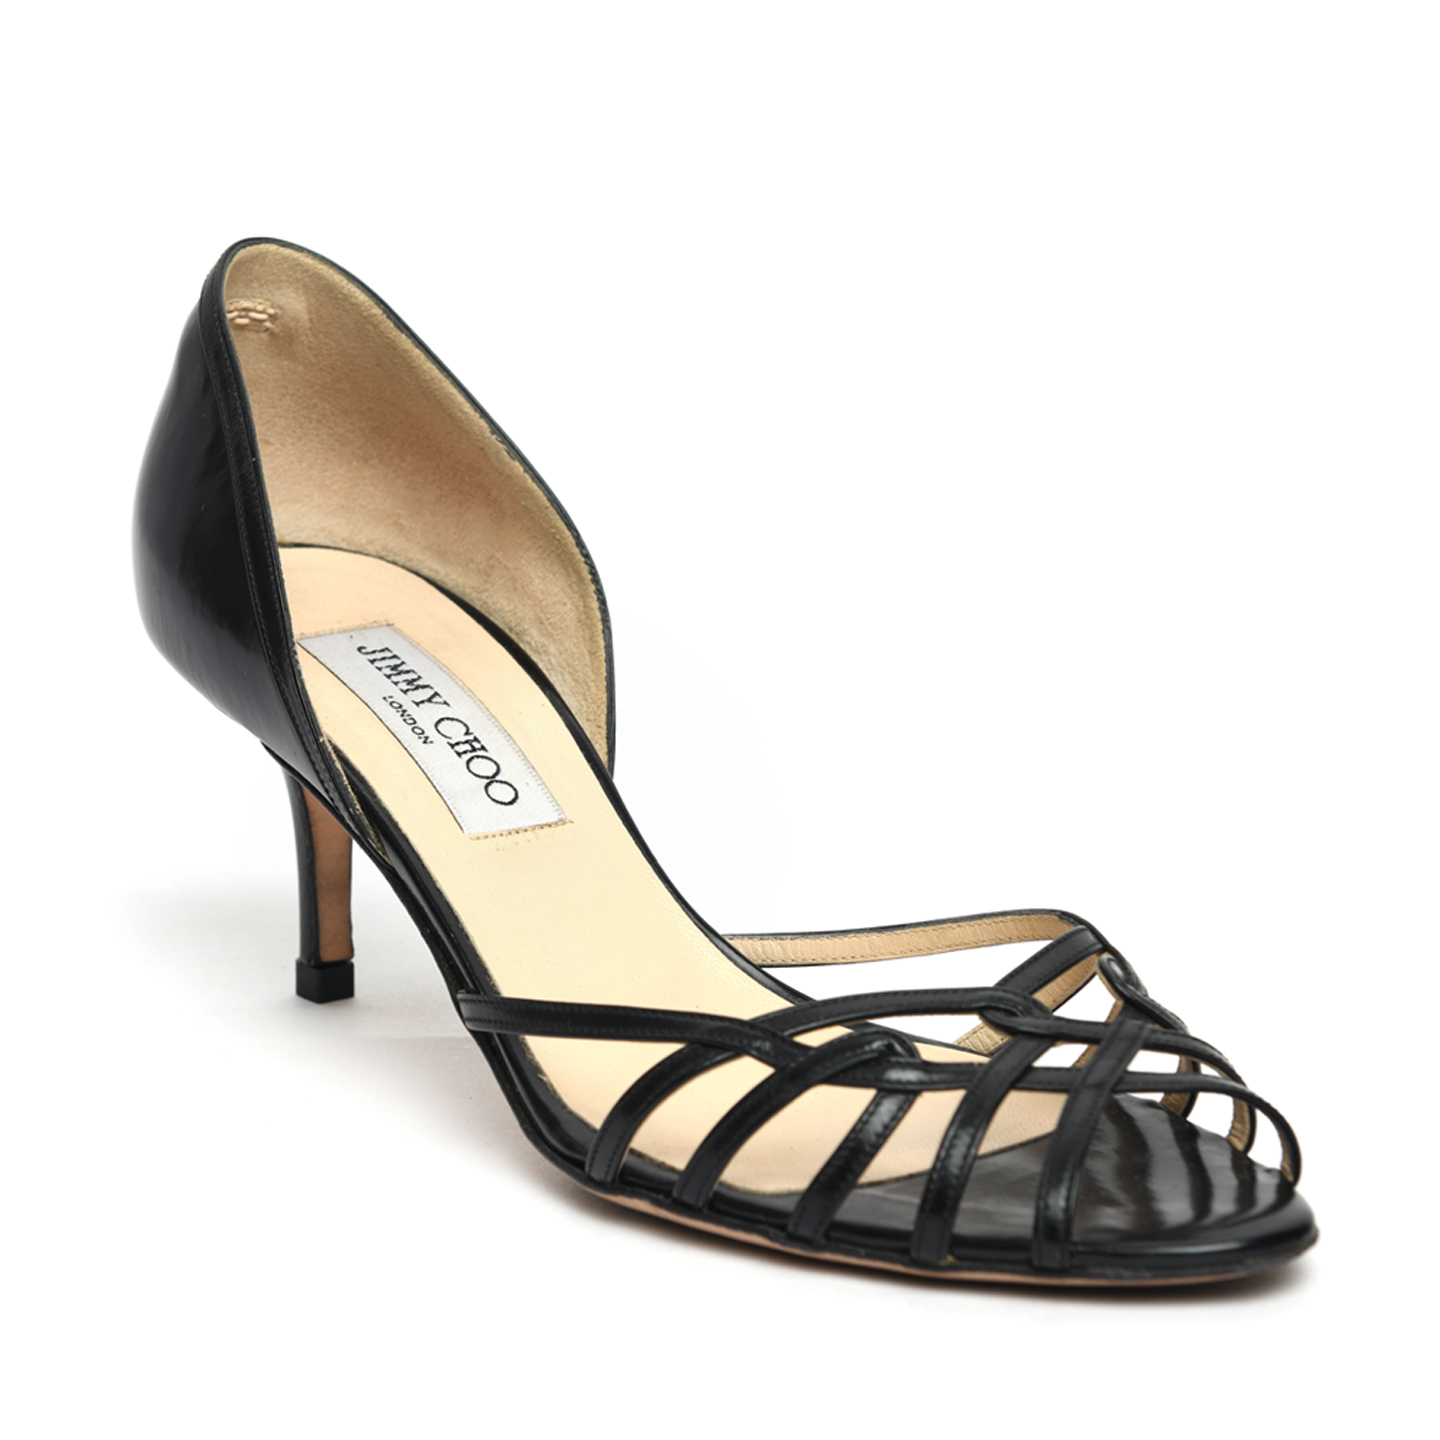 Jimmy Choo Black Leather 'Lantern' D'Orsay Pumps 01